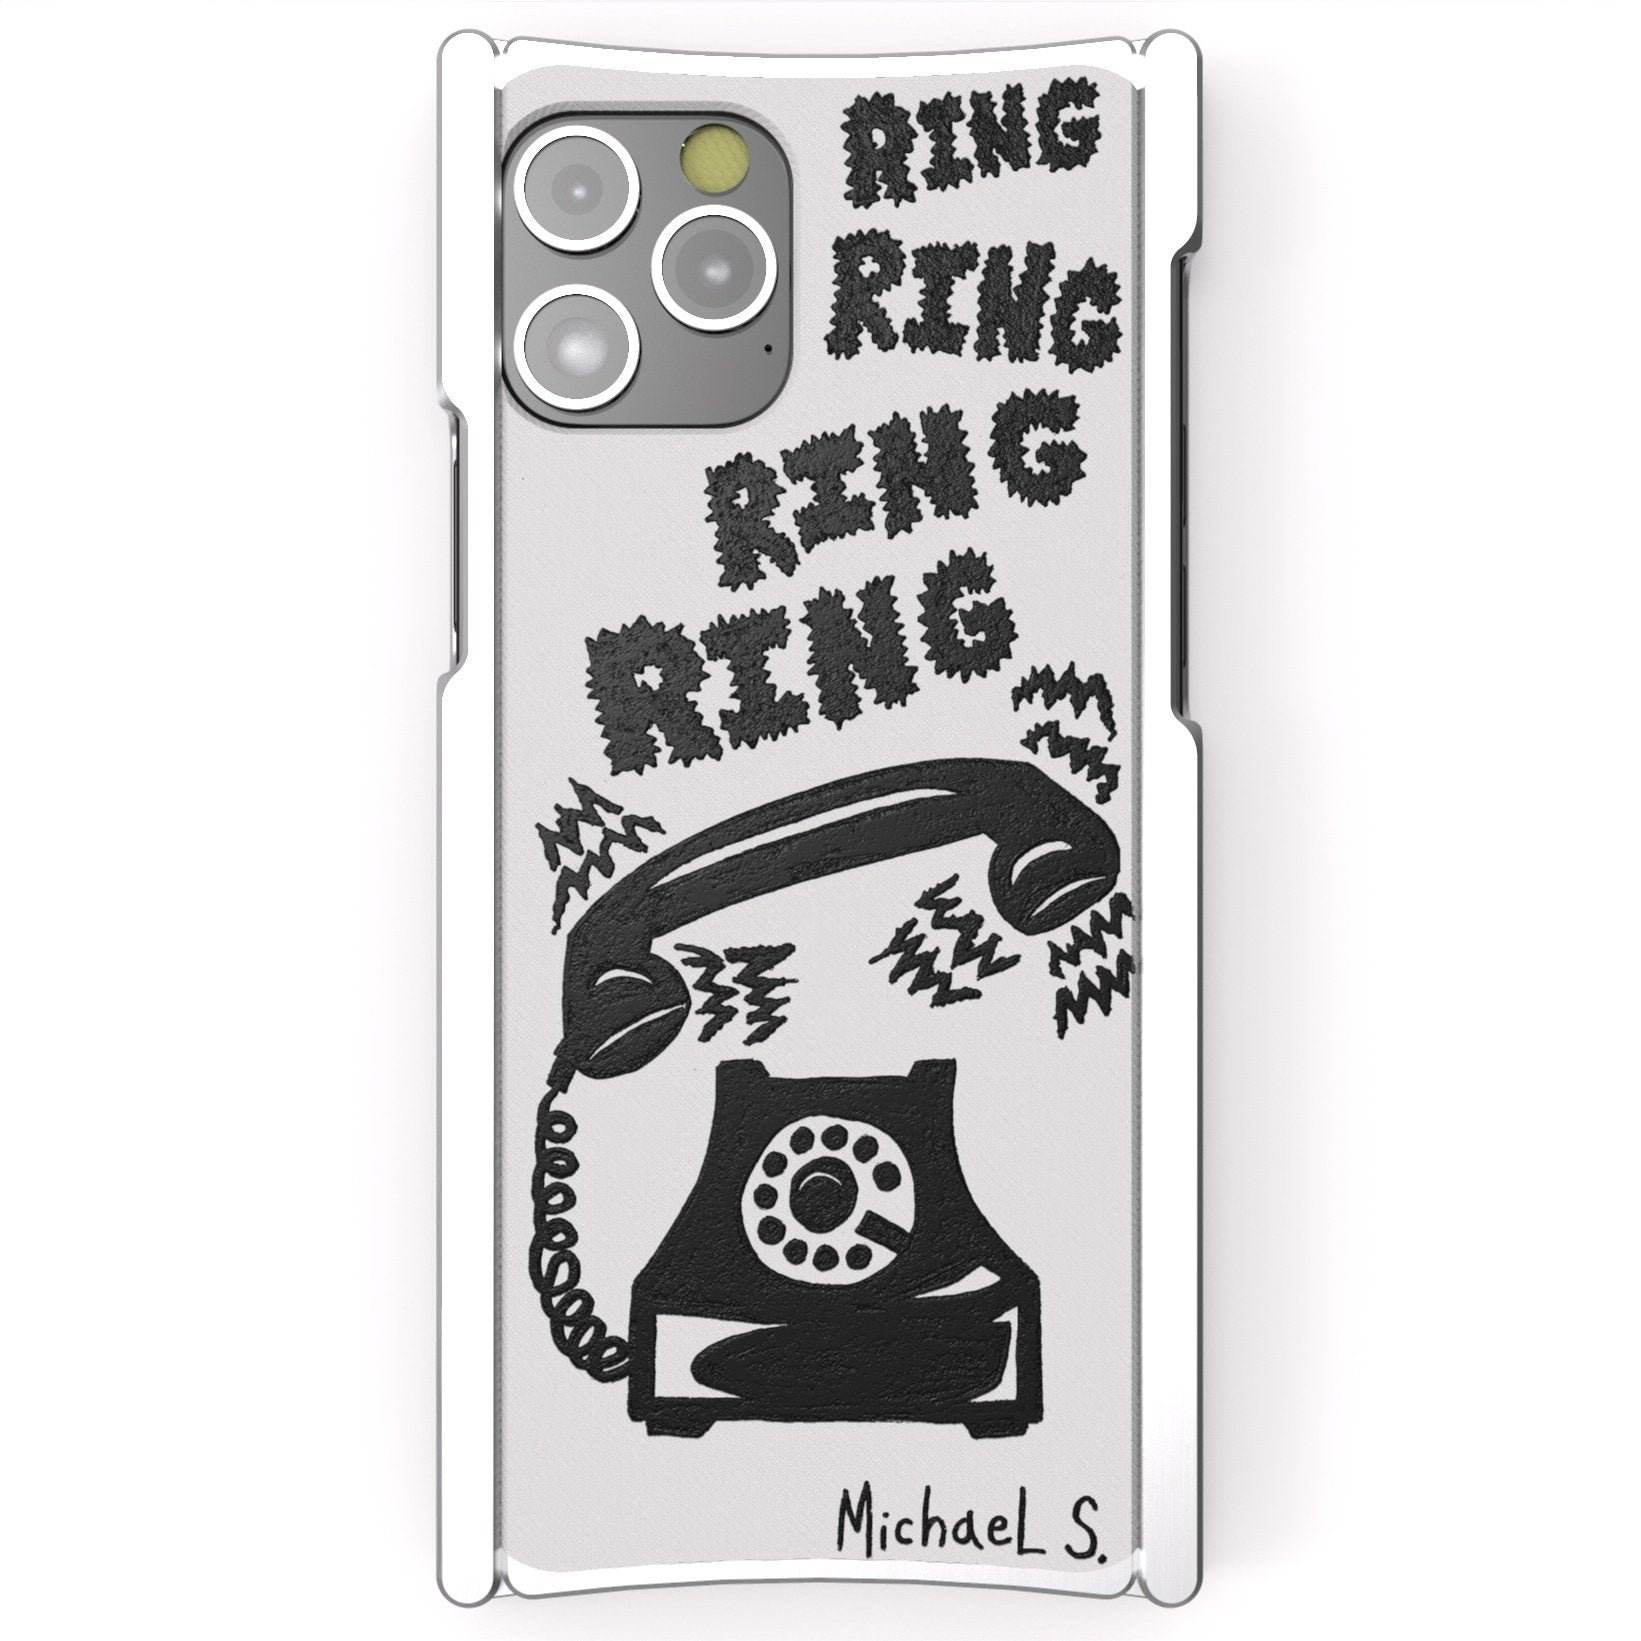 iPhone 12 Case, Michael Scoggins, Ring Ring Ring, Artist Edition Europa 12 Pro Silver Aluminum and White G10